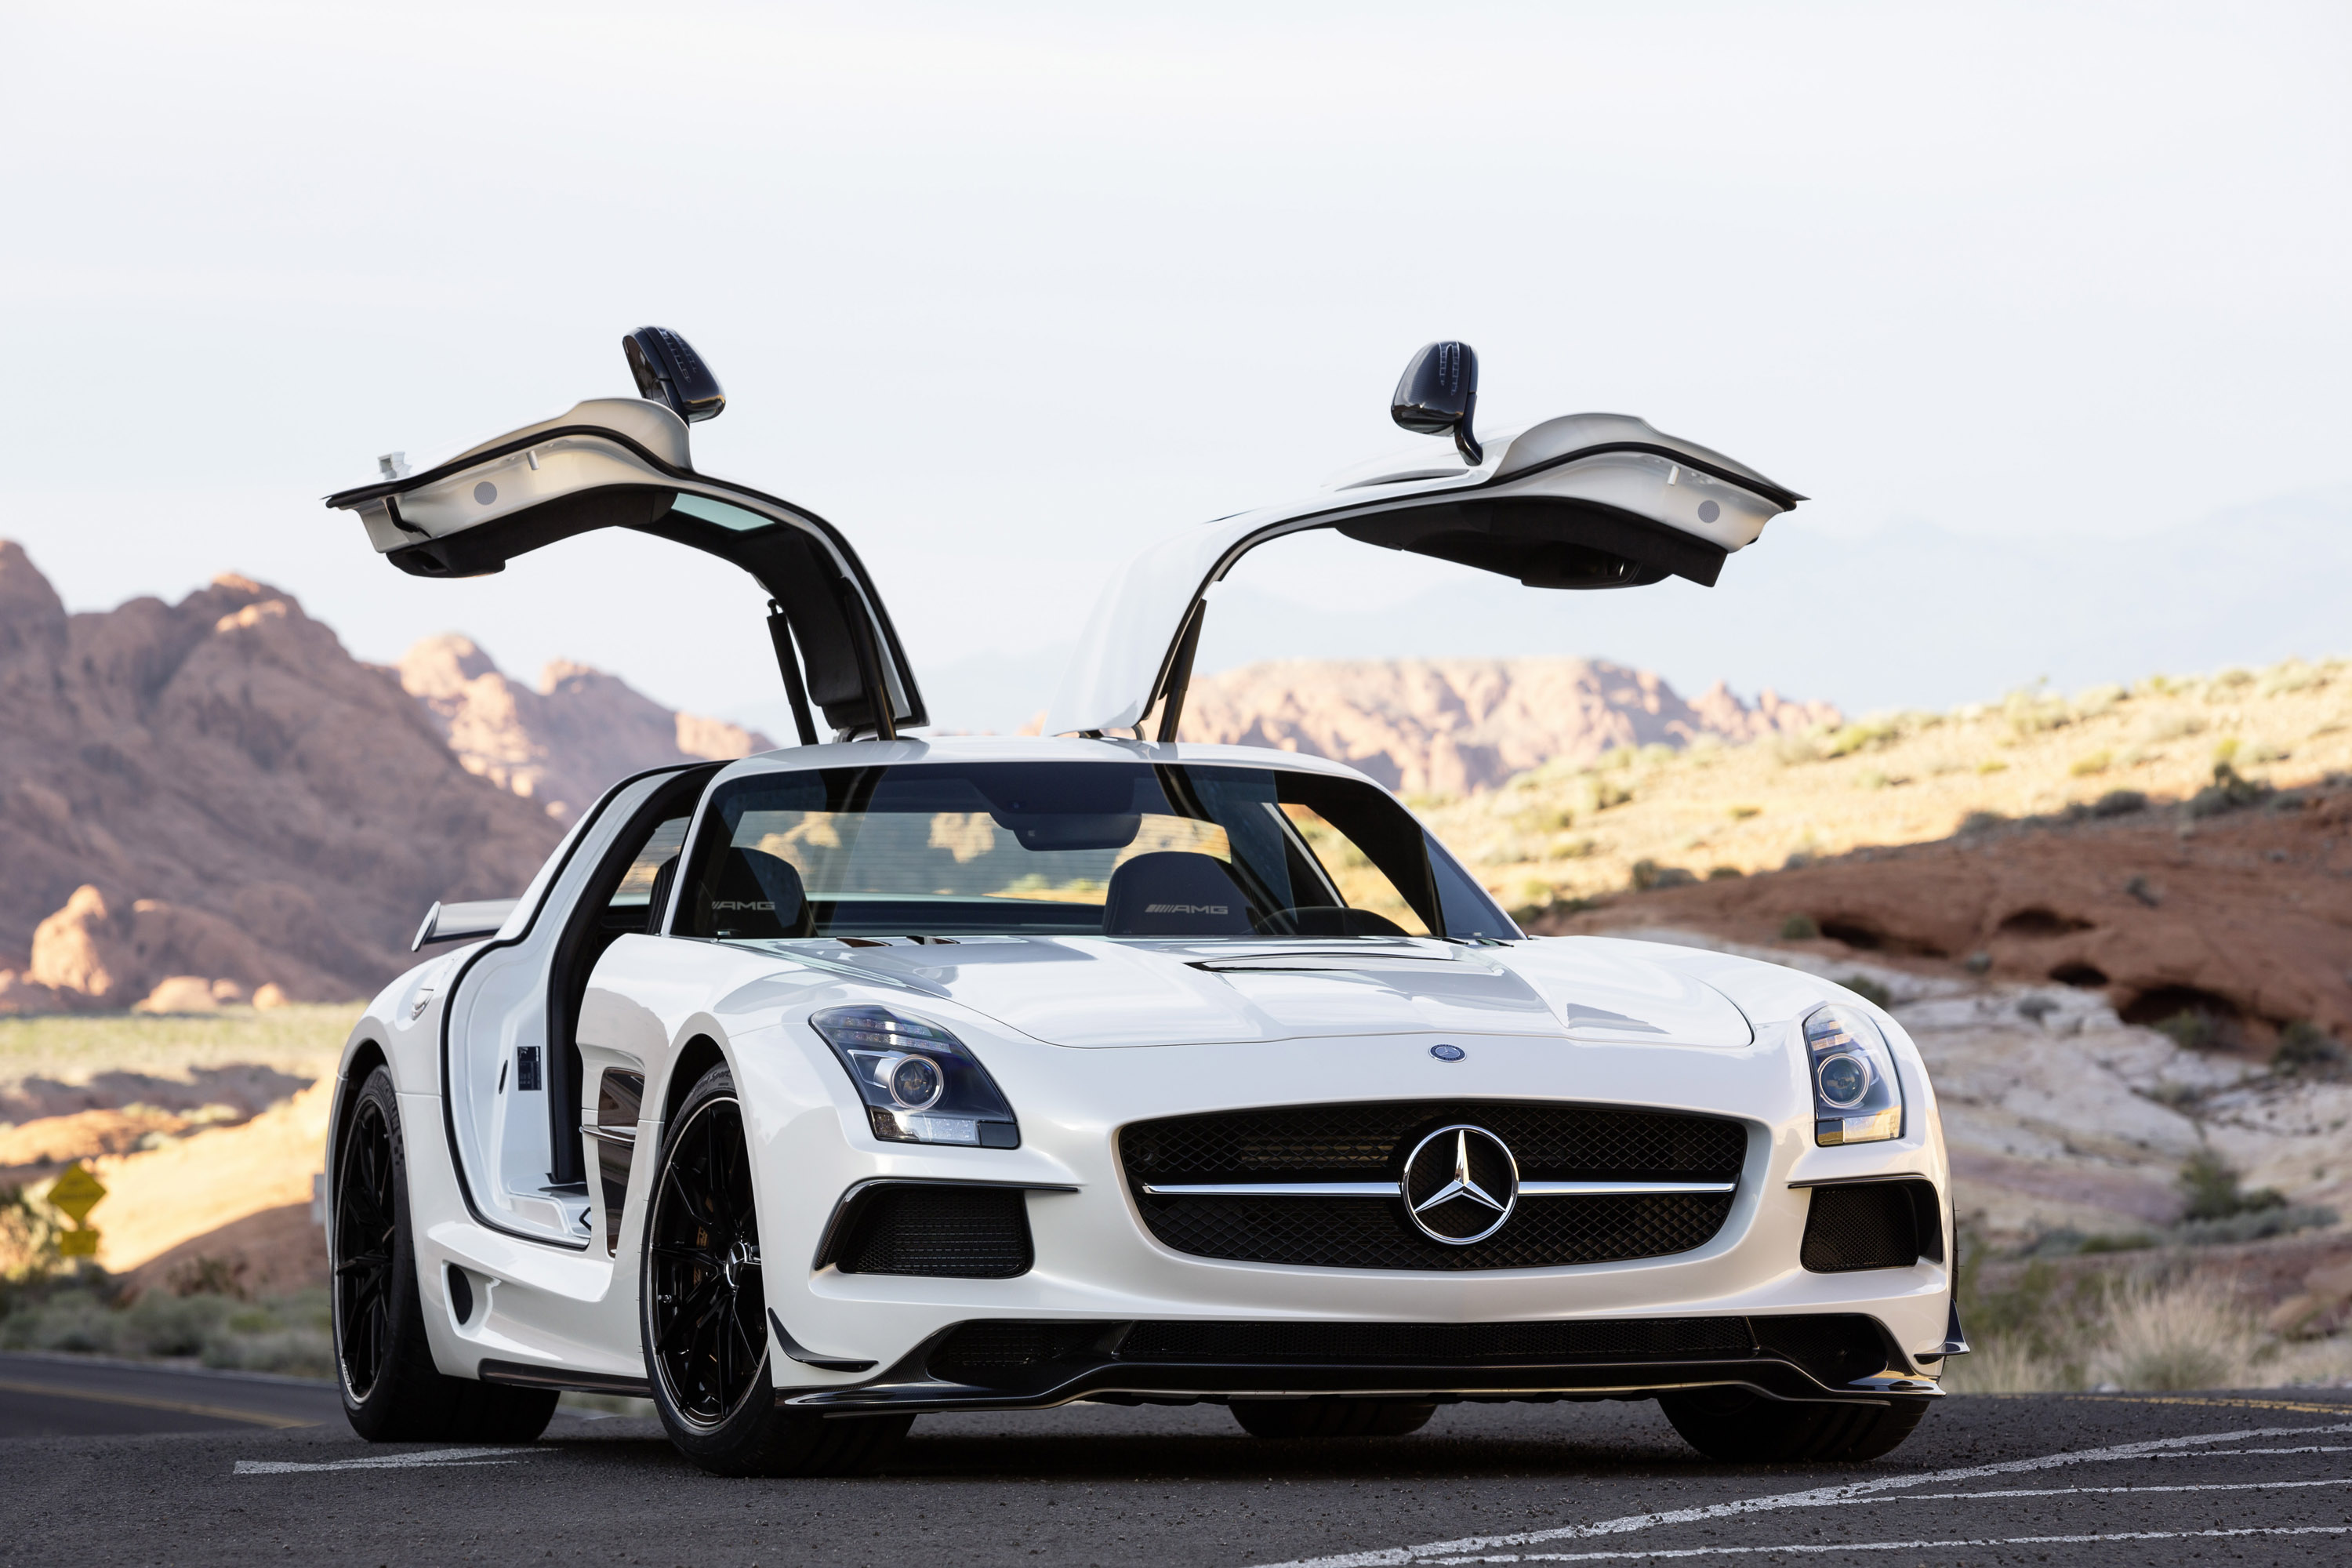 Mercedes Benz Sls Amg Black Series Price 249 900